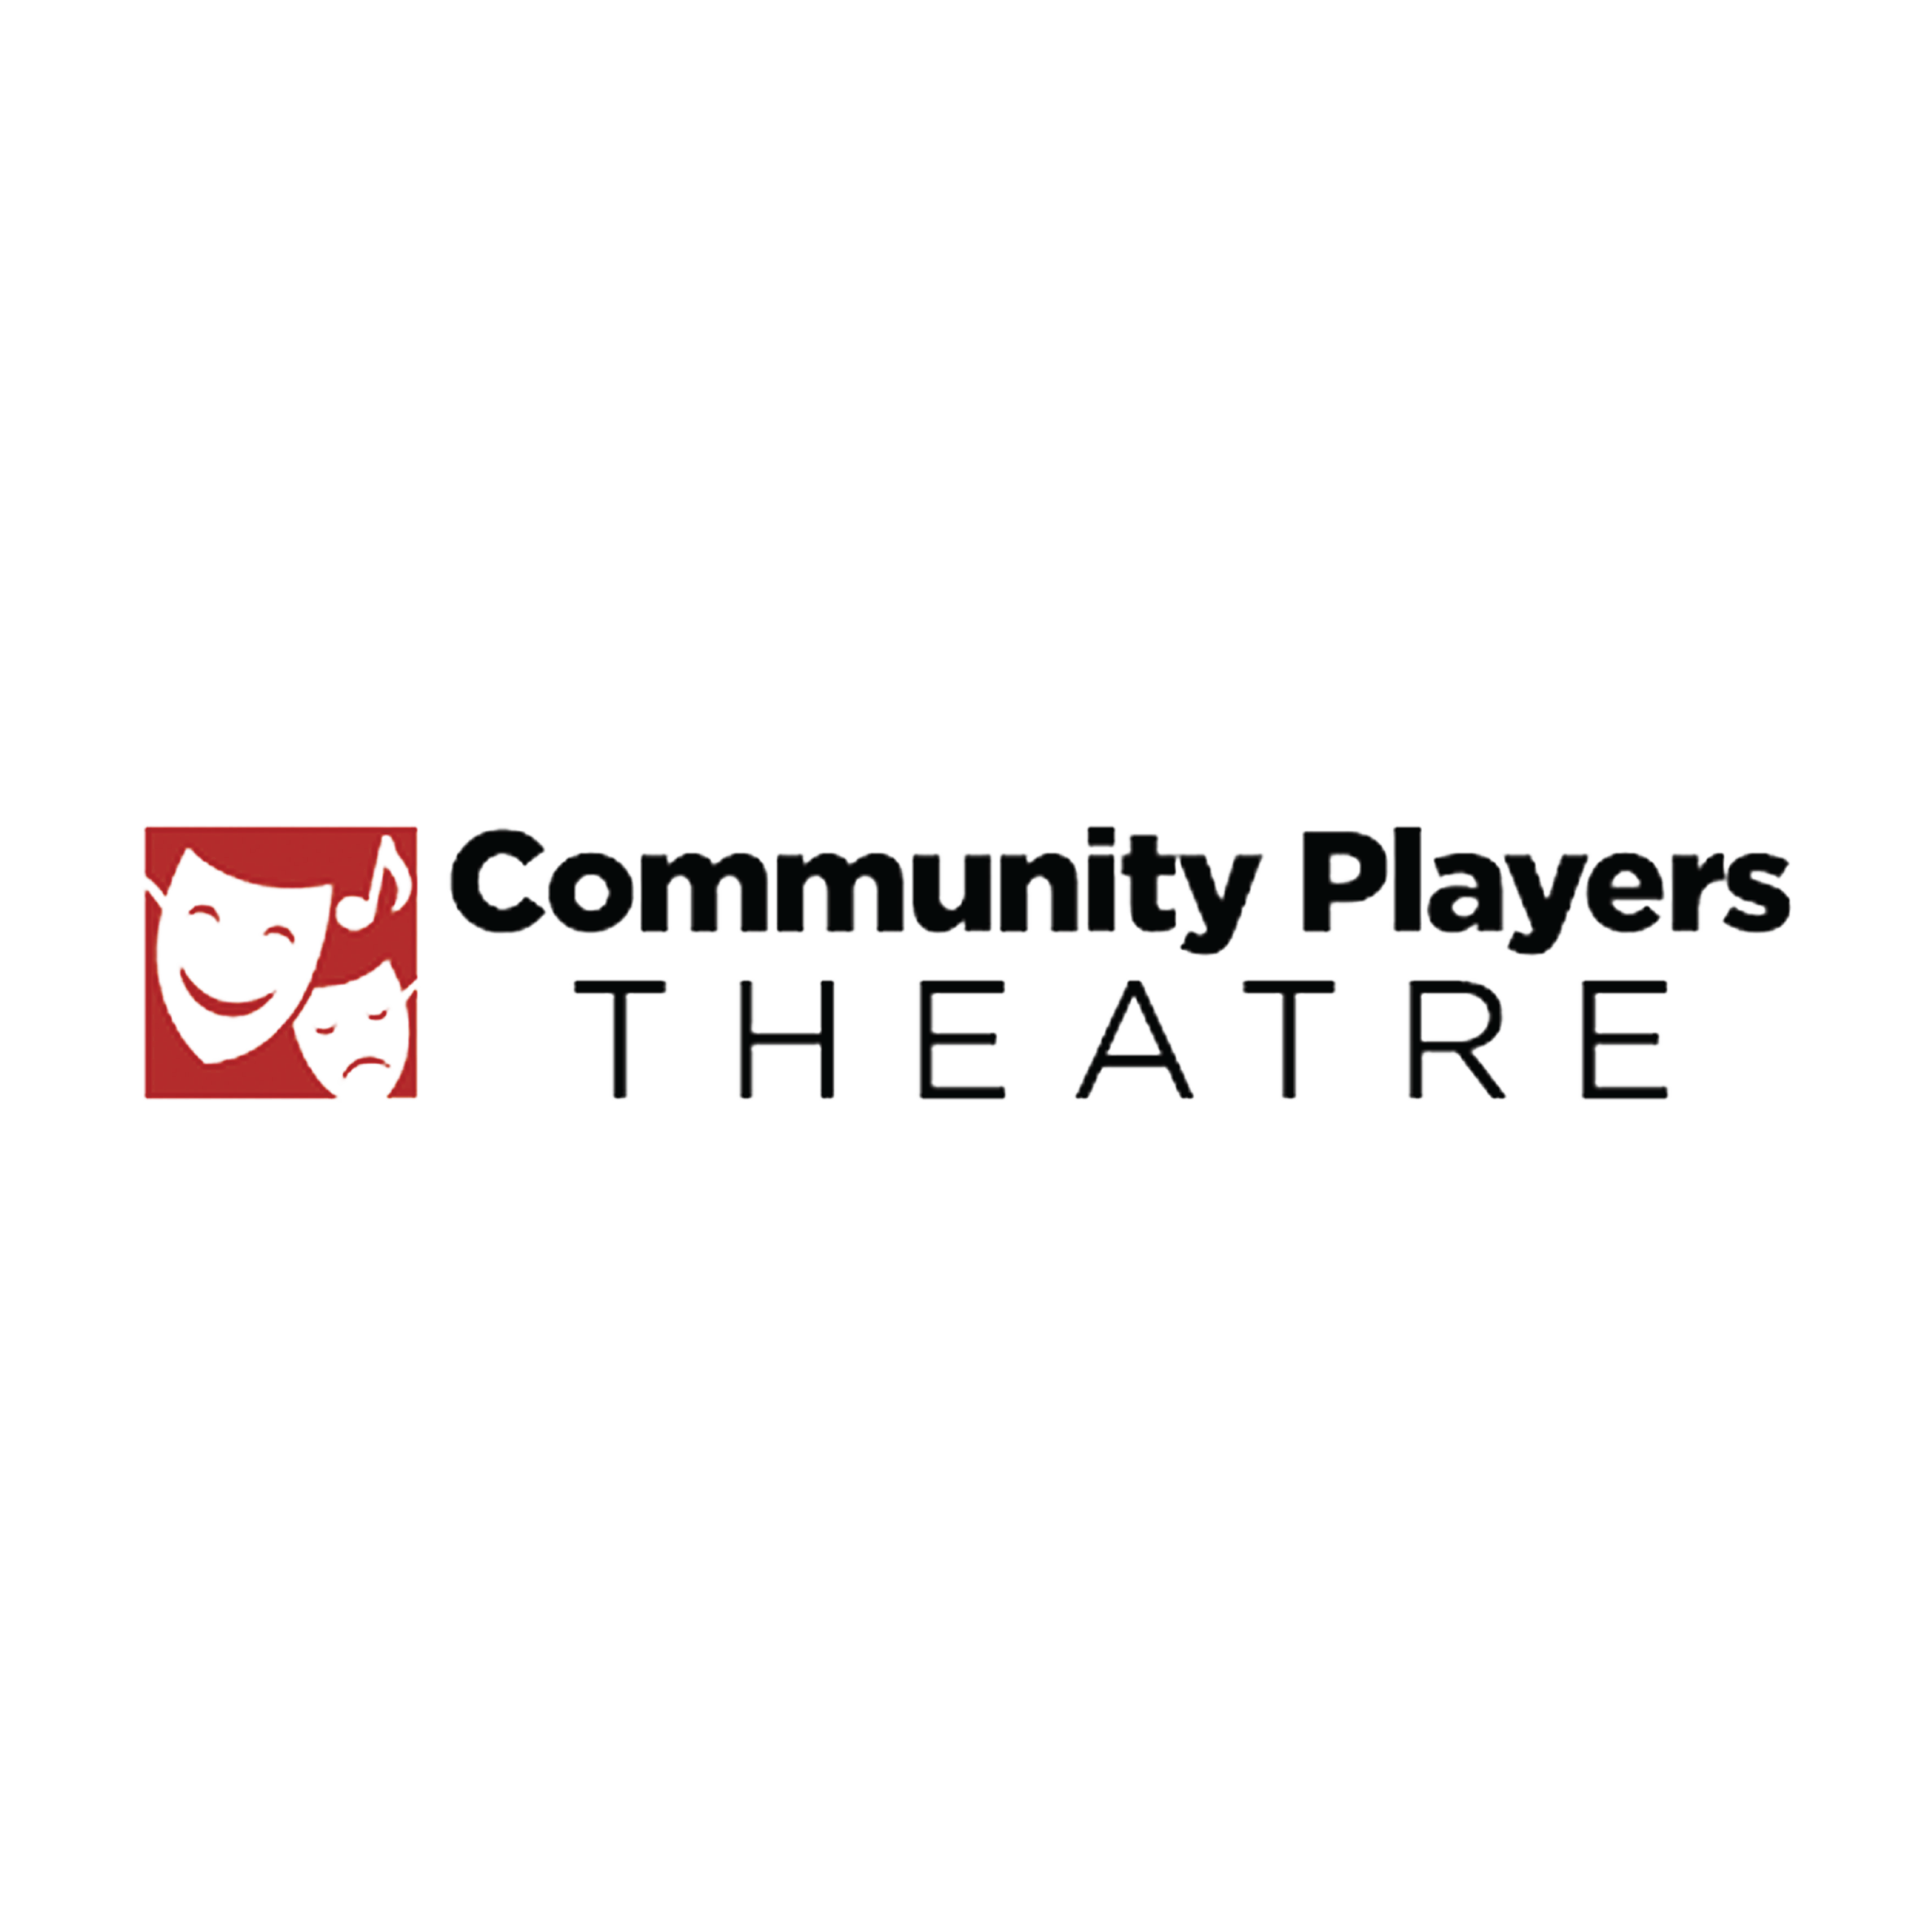 Community Players Theatre